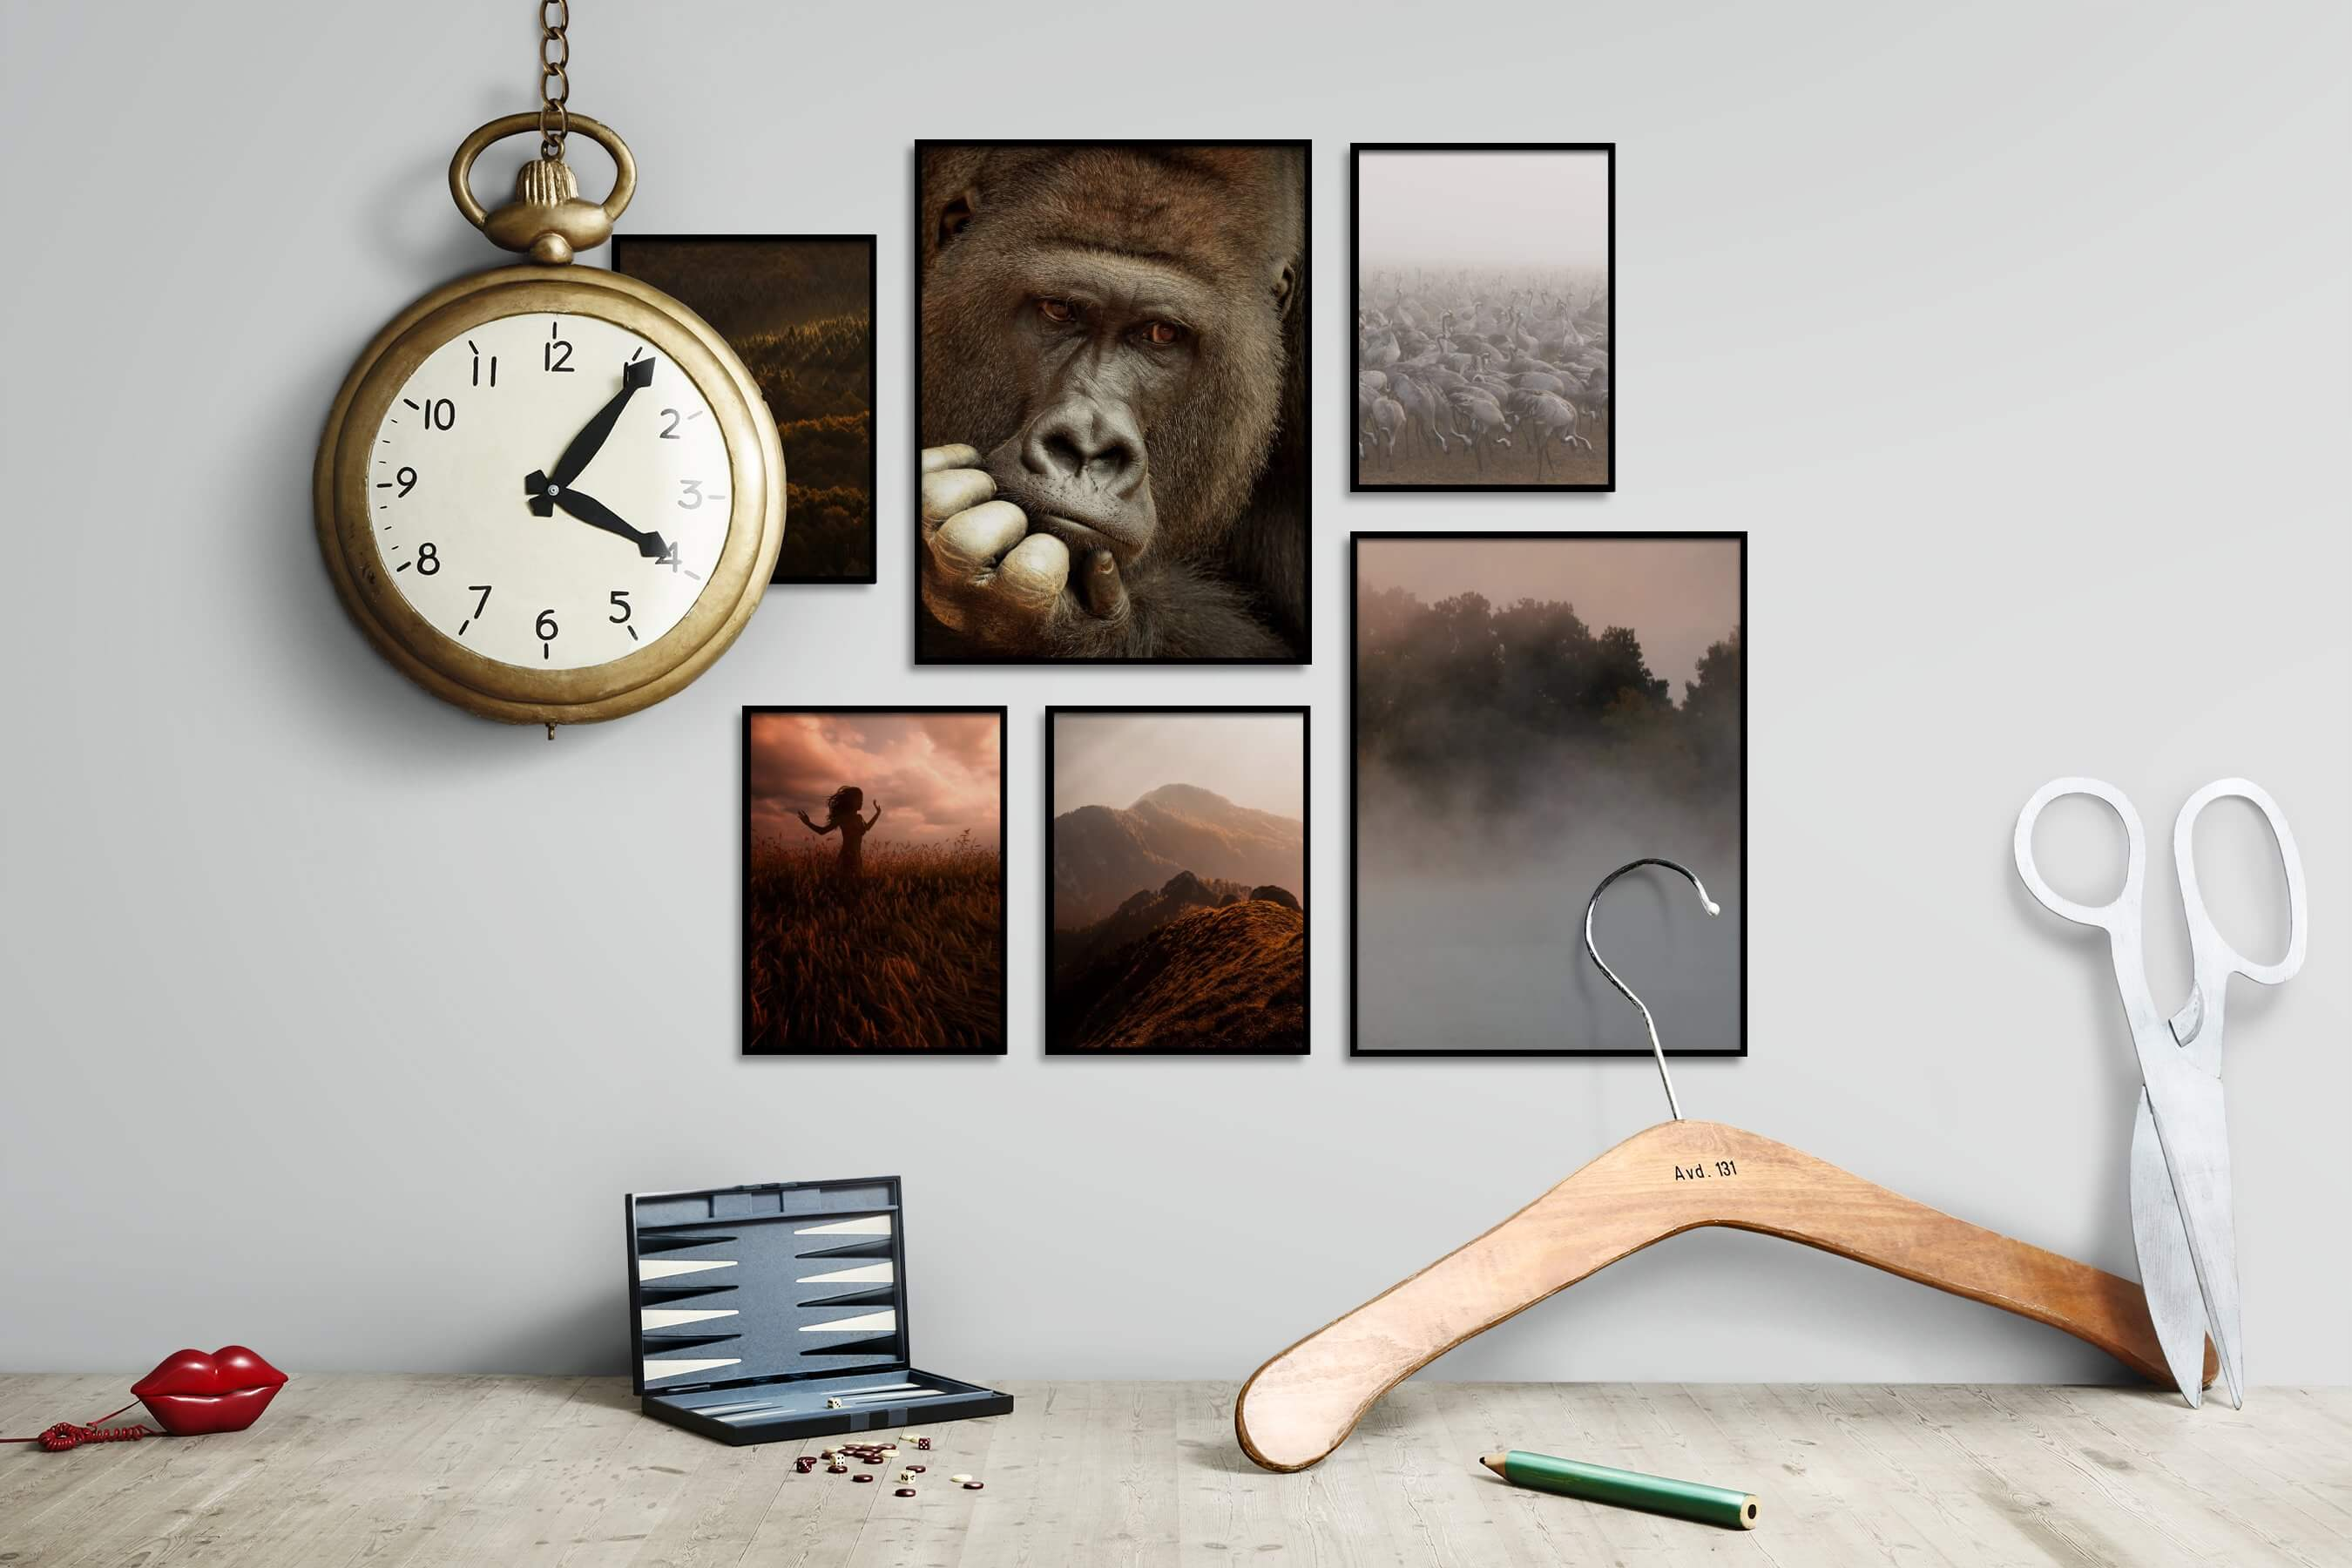 Gallery wall idea with six framed pictures arranged on a wall depicting For the Moderate, Nature, Mindfulness, Animals, and Country Life